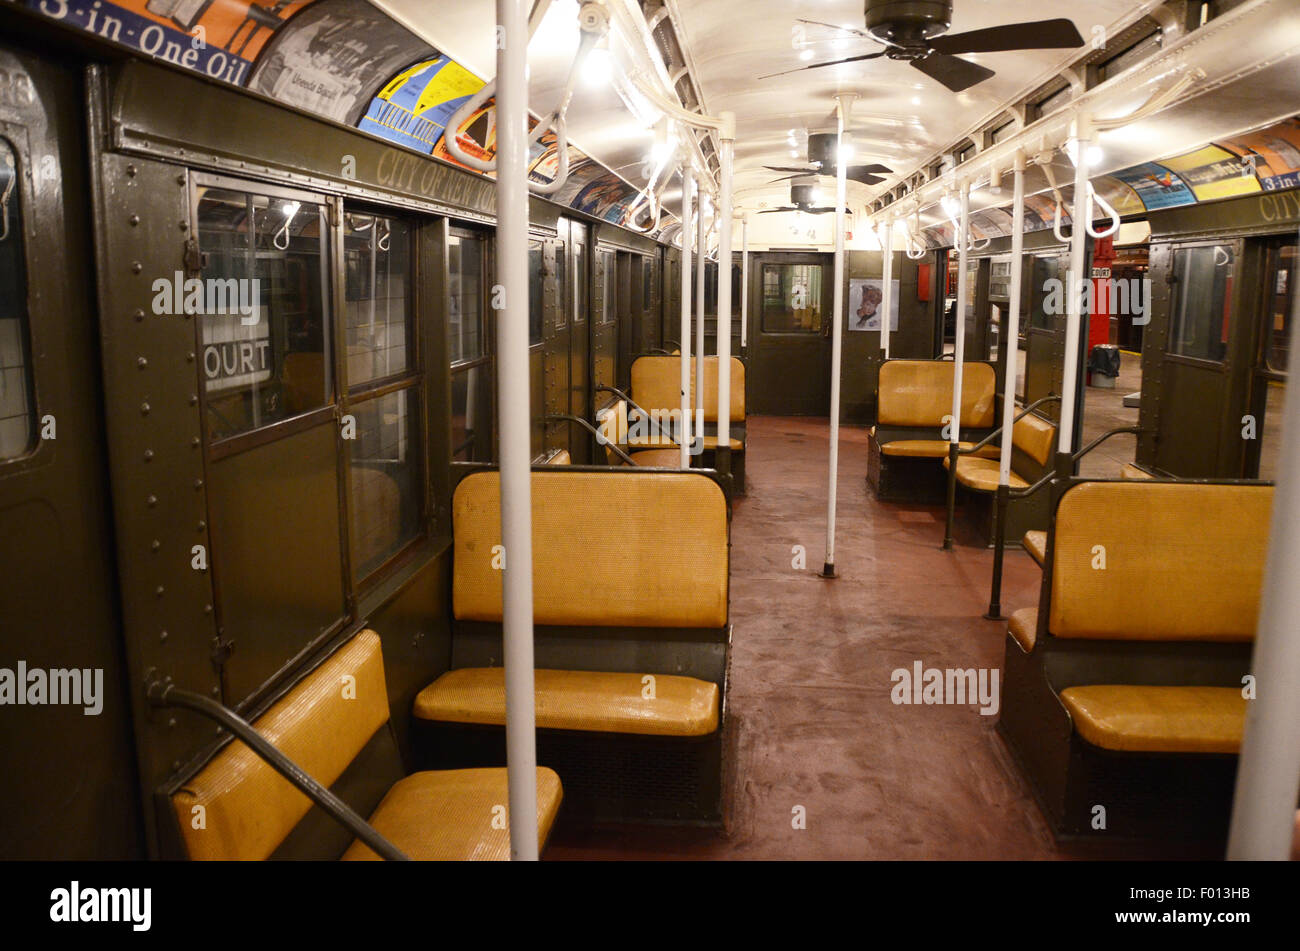 New York Transit Museum 1930 carriage subway vintage subway signs adverts rattan benches green livery exterior special - Stock Image